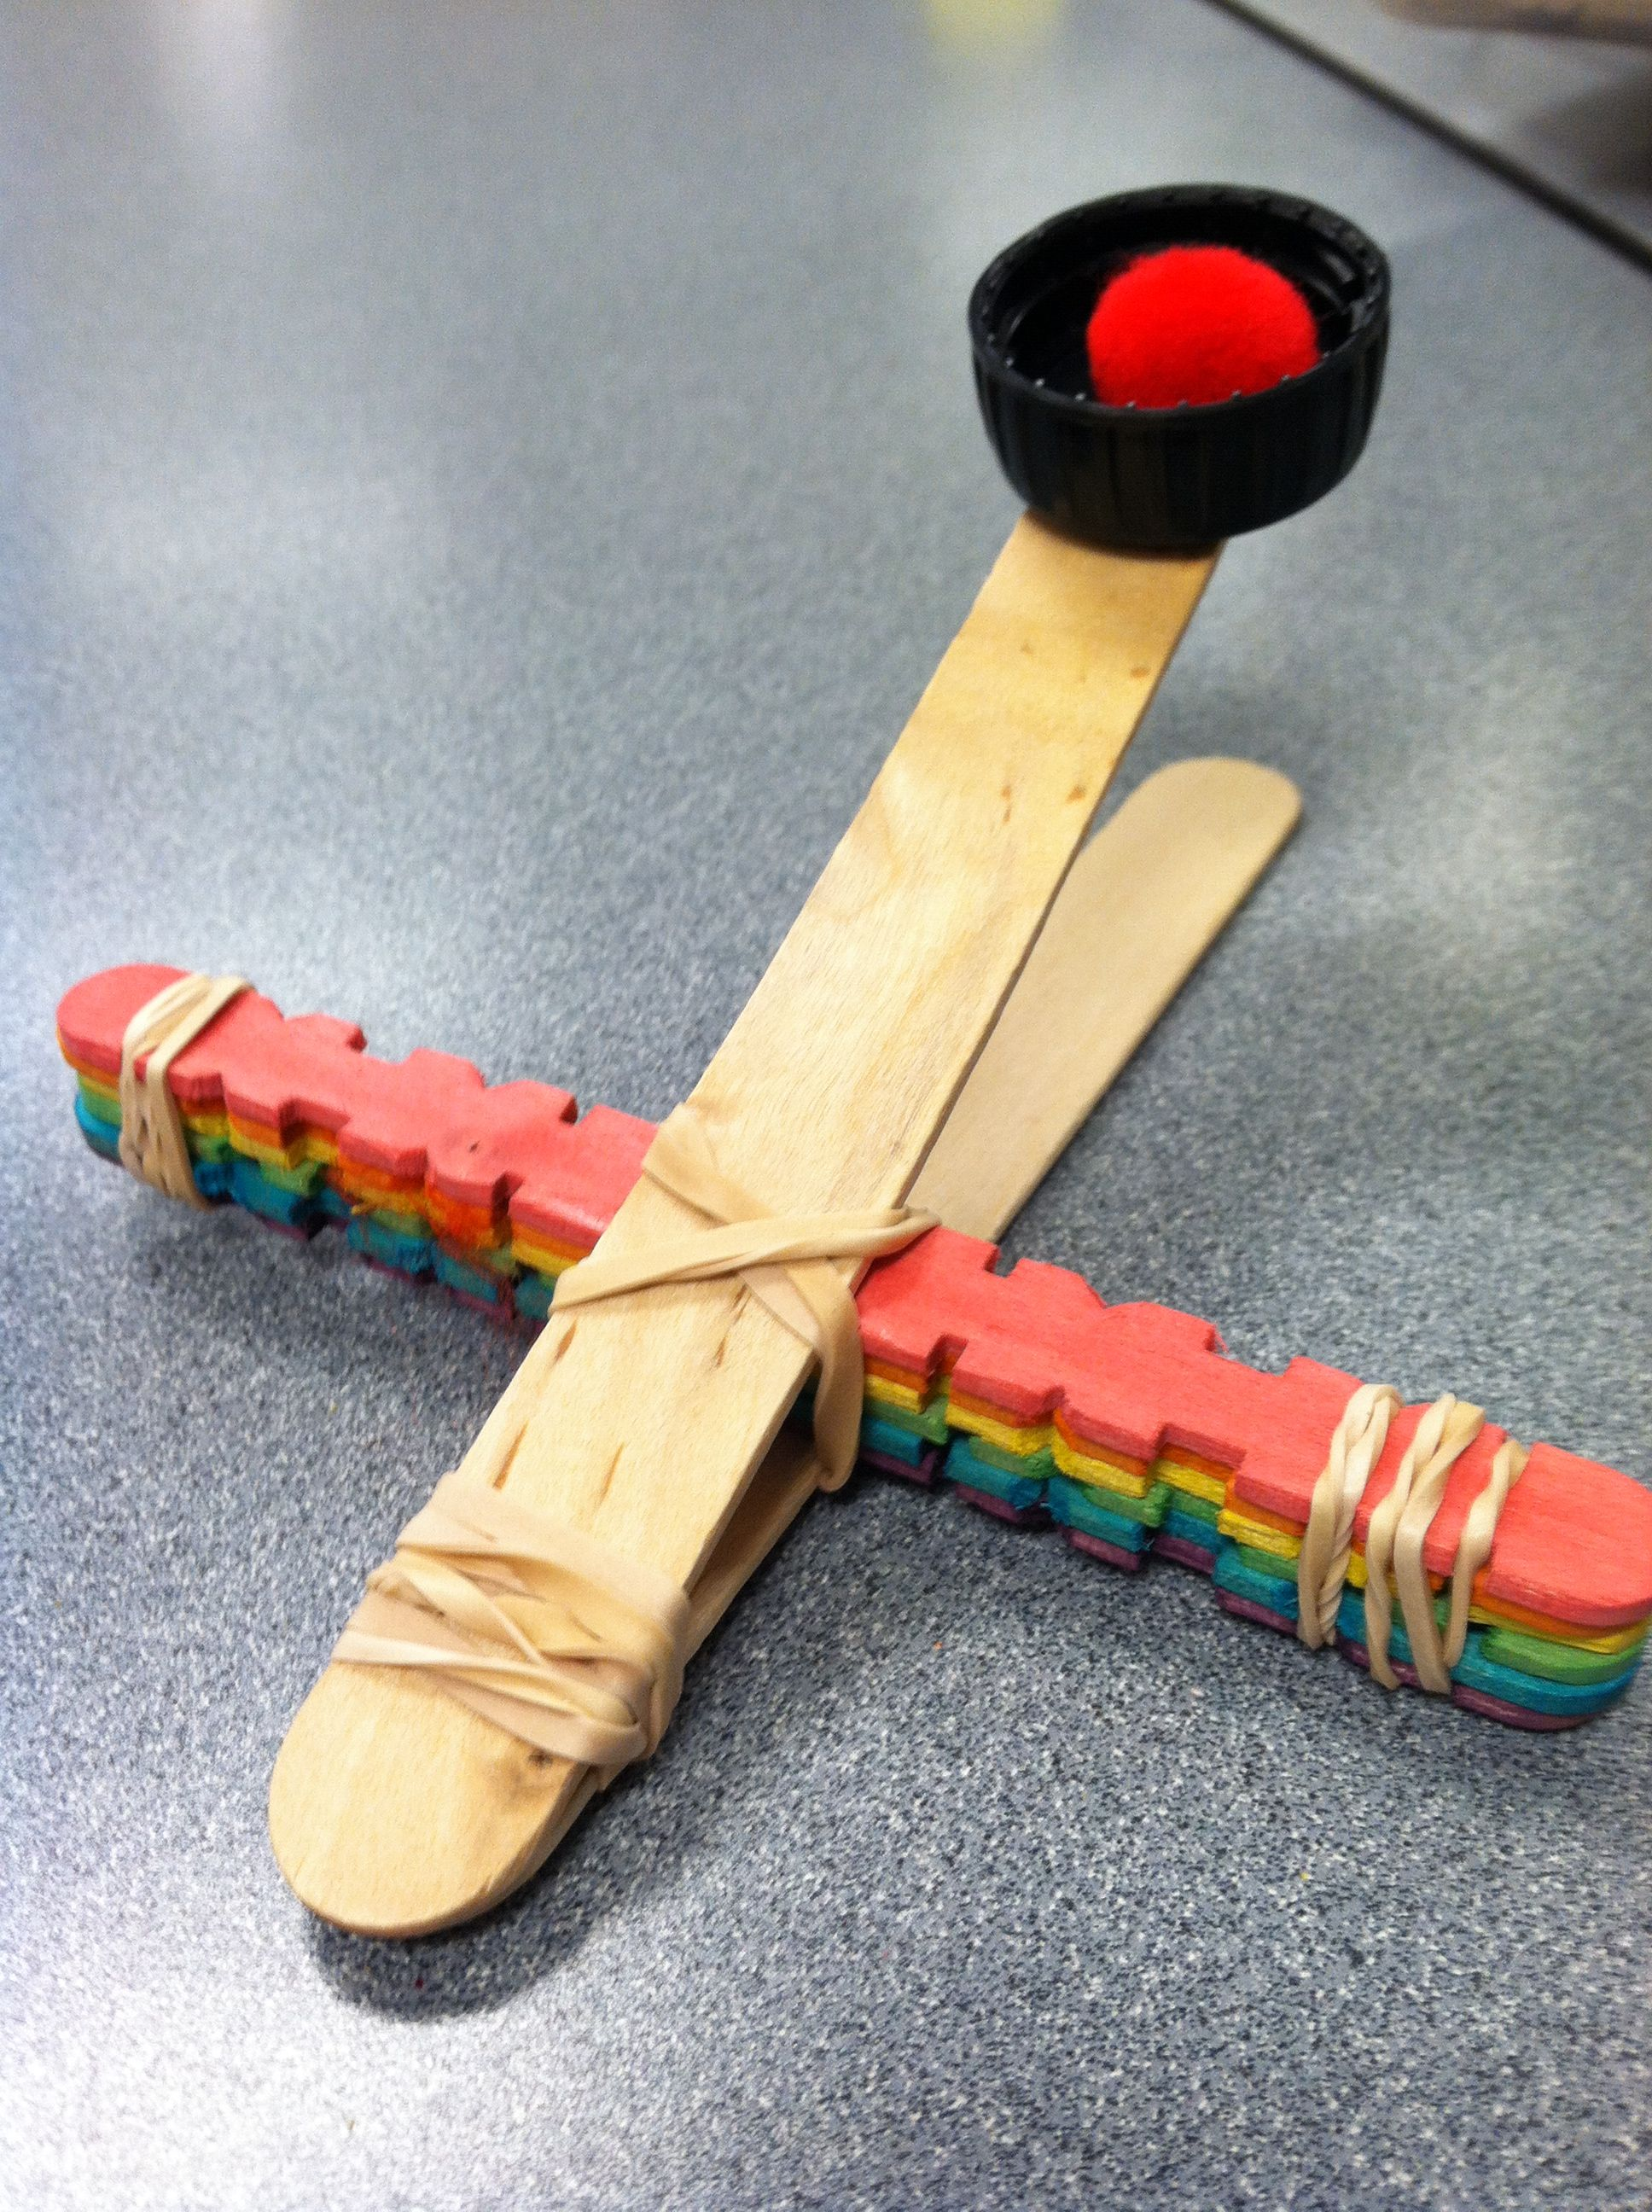 Catapult Craft For Kids: DIY Catapult Out Of Popsicle Sticks And Rubber Bands